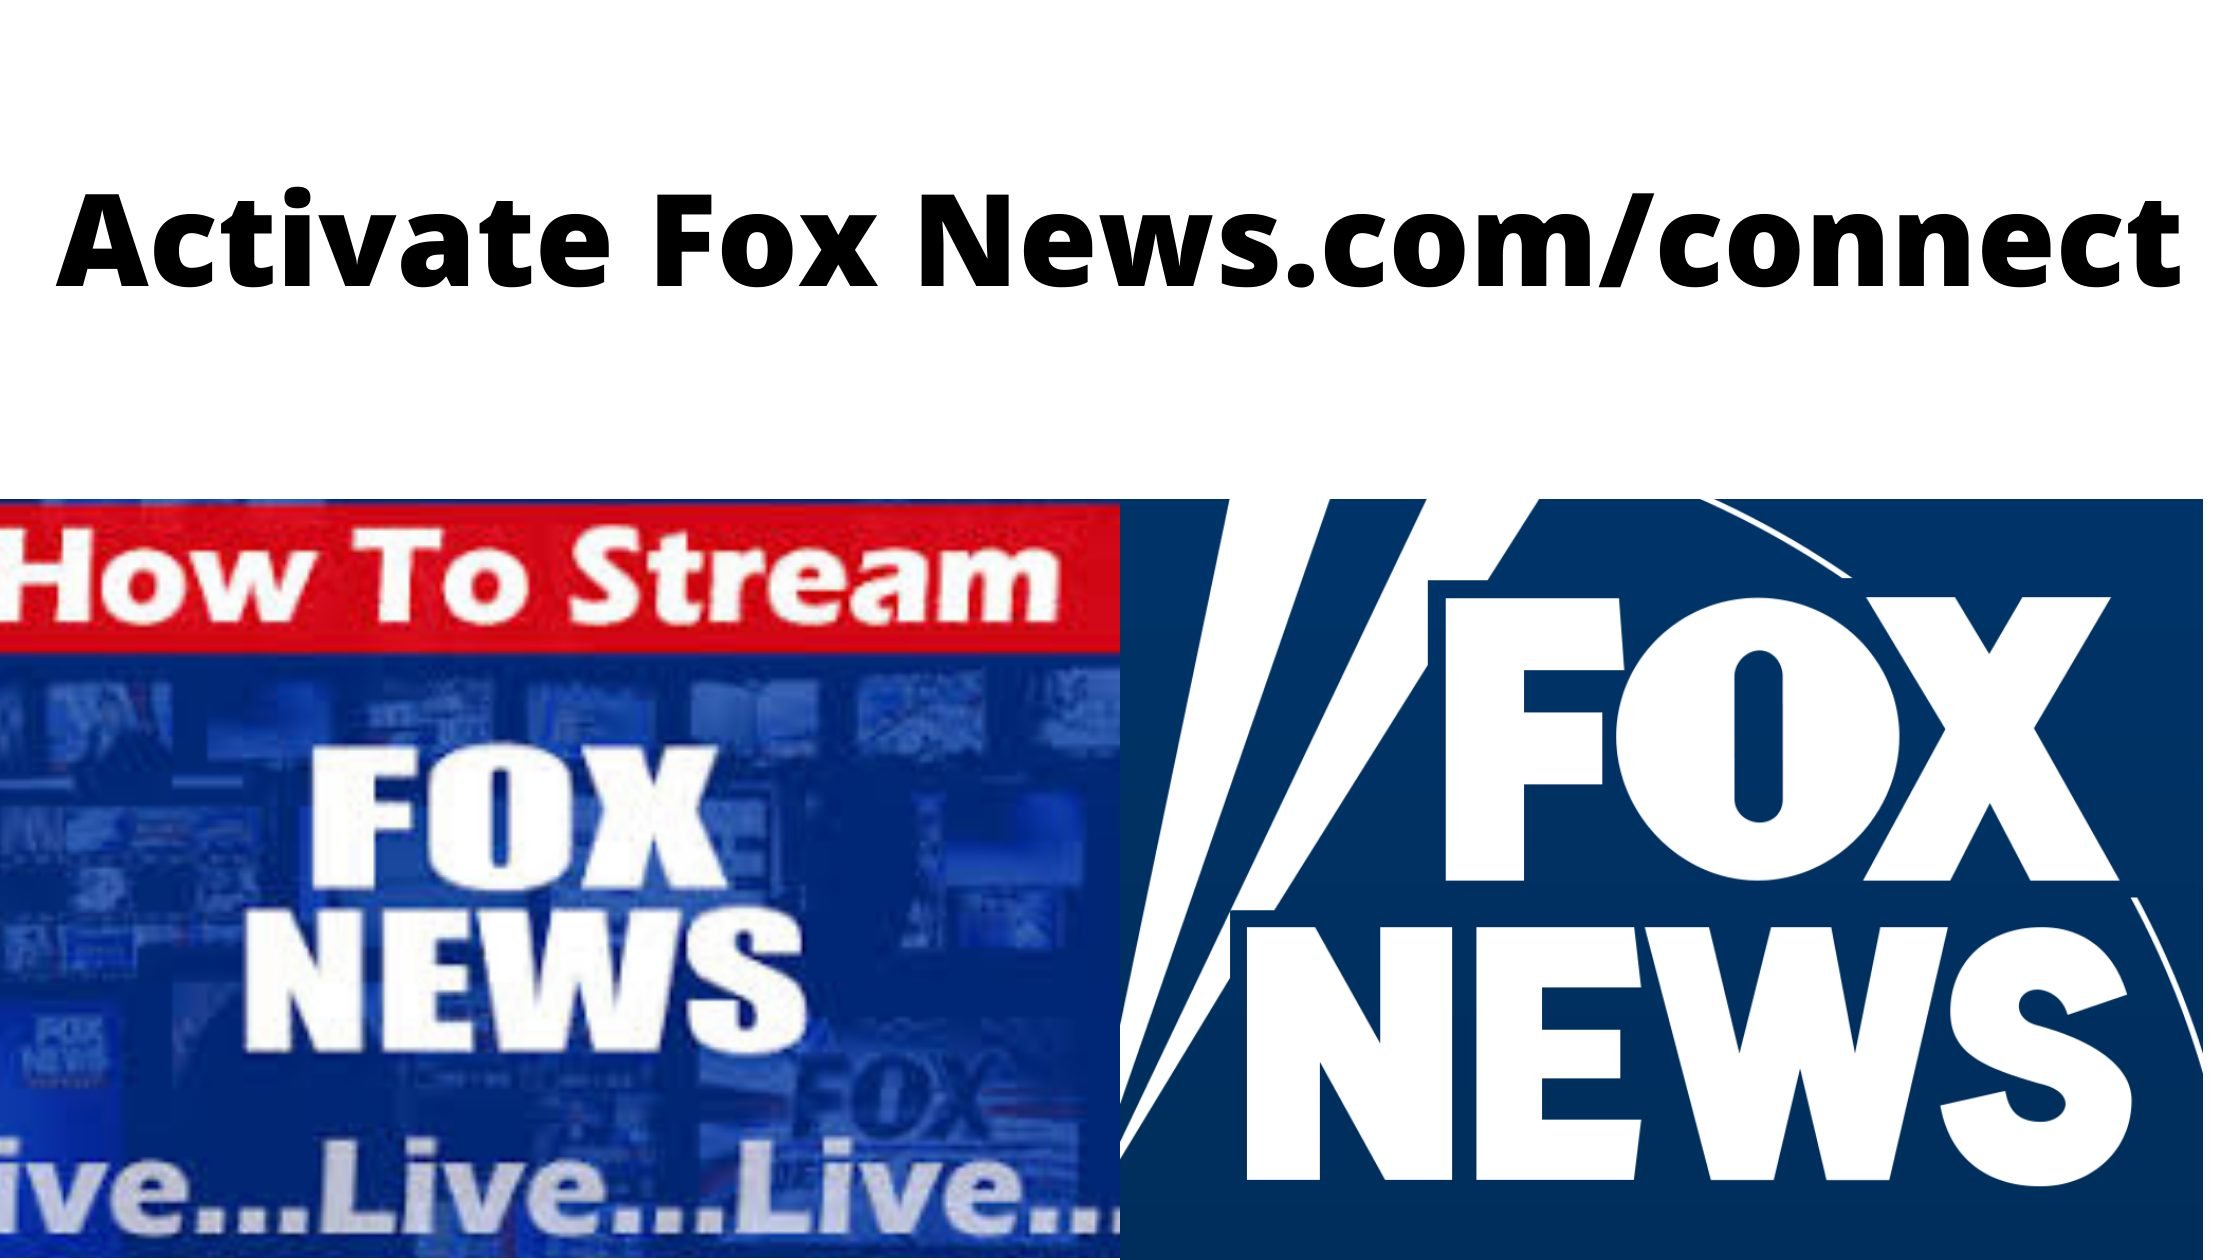 how to Activate Fox News.com/connect